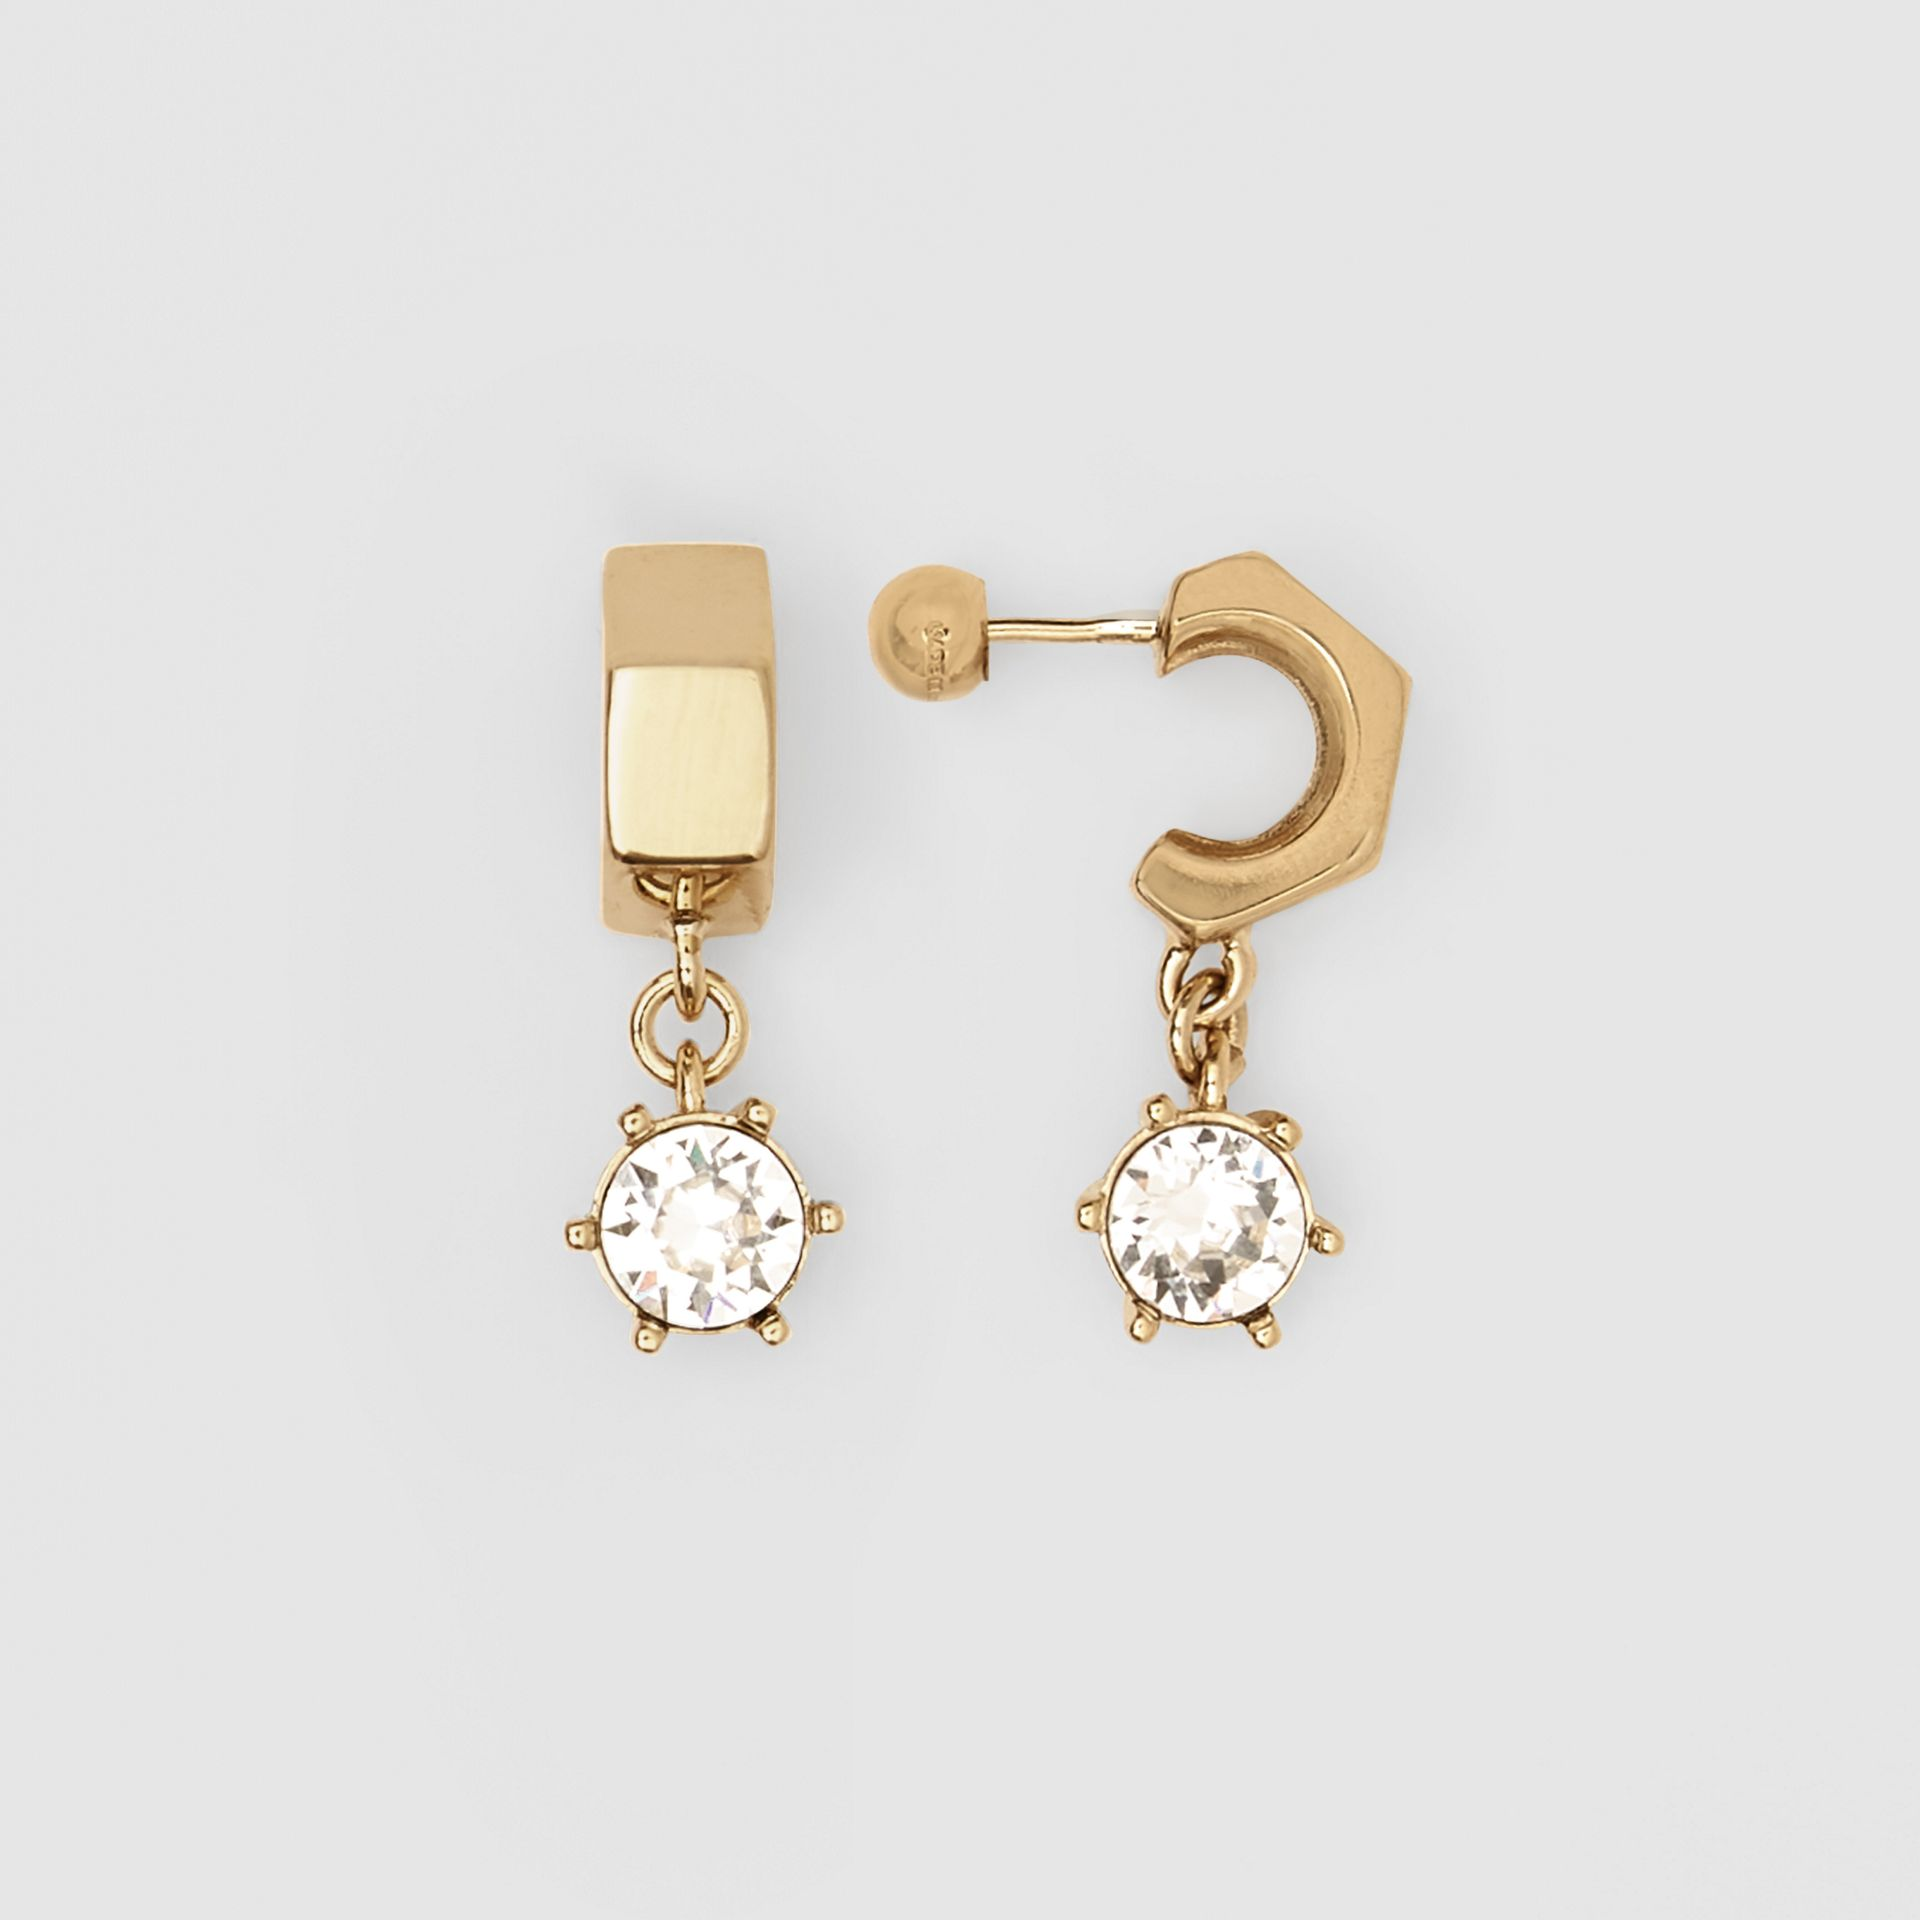 Crystal Charm Gold-plated Nut Earrings in Light - Women | Burberry Hong Kong - gallery image 3